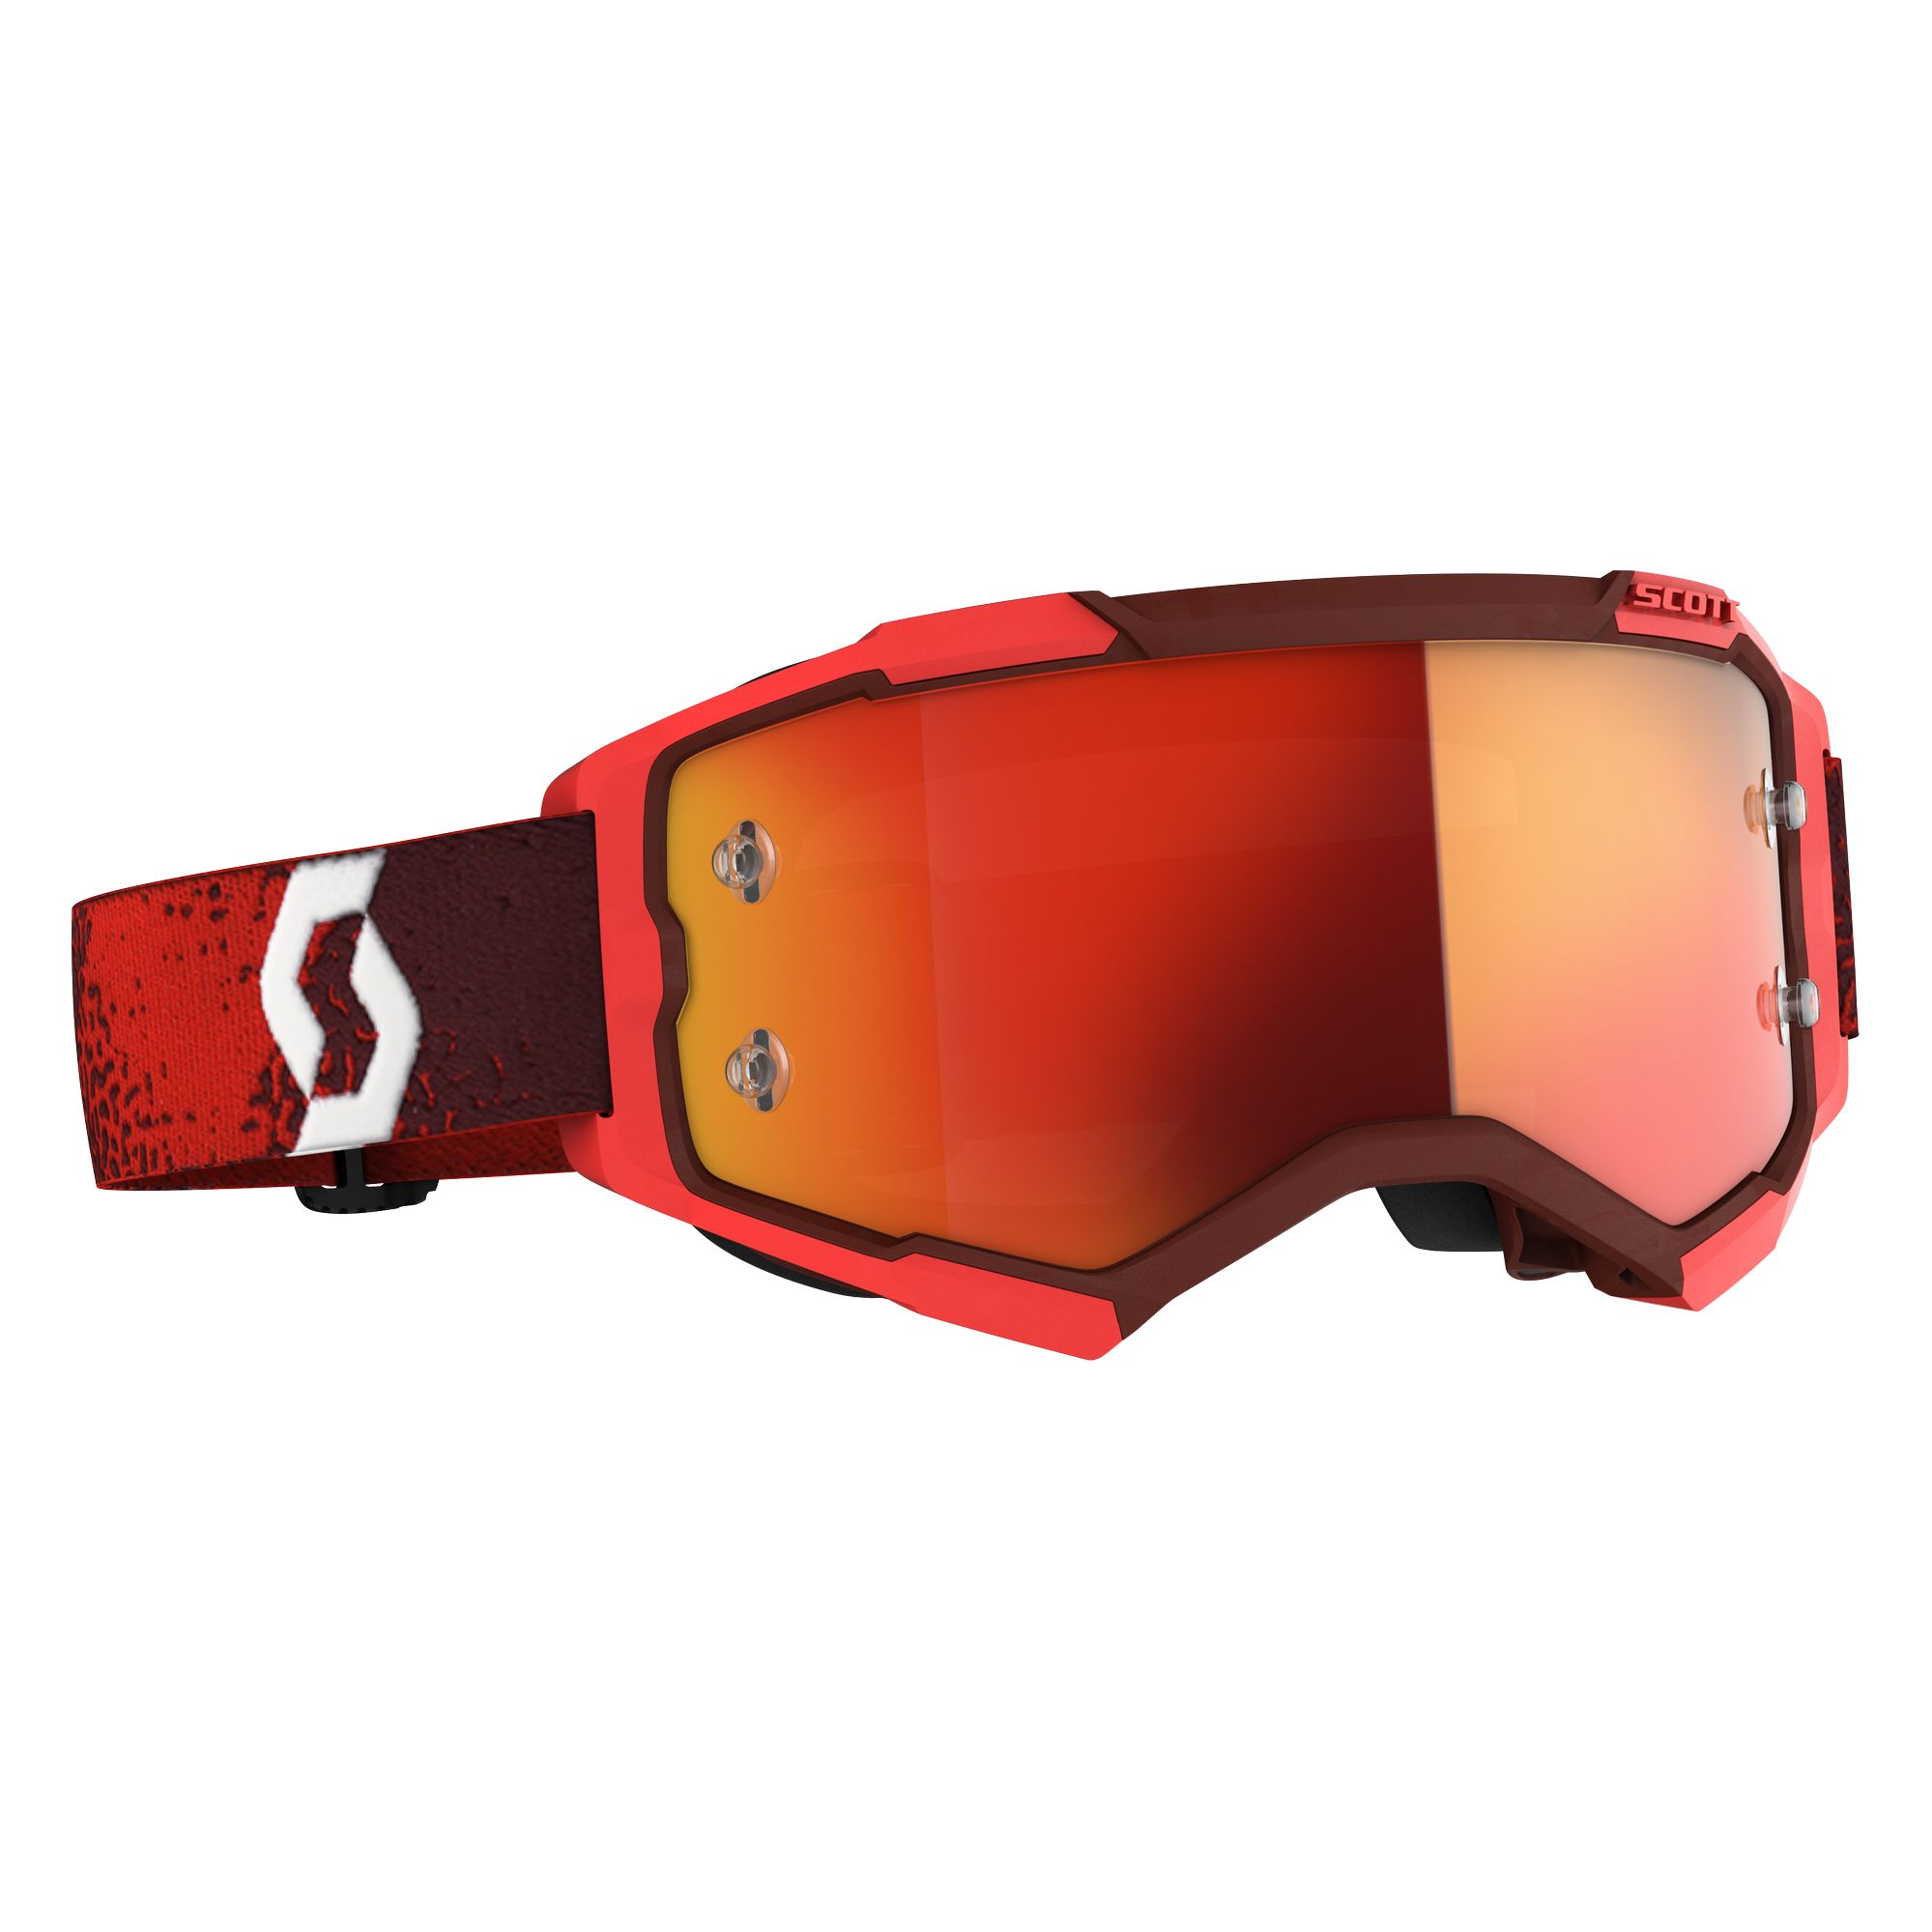 RIP N ROLL TVS Total Vision System for Fox Main Pro motocross goggles